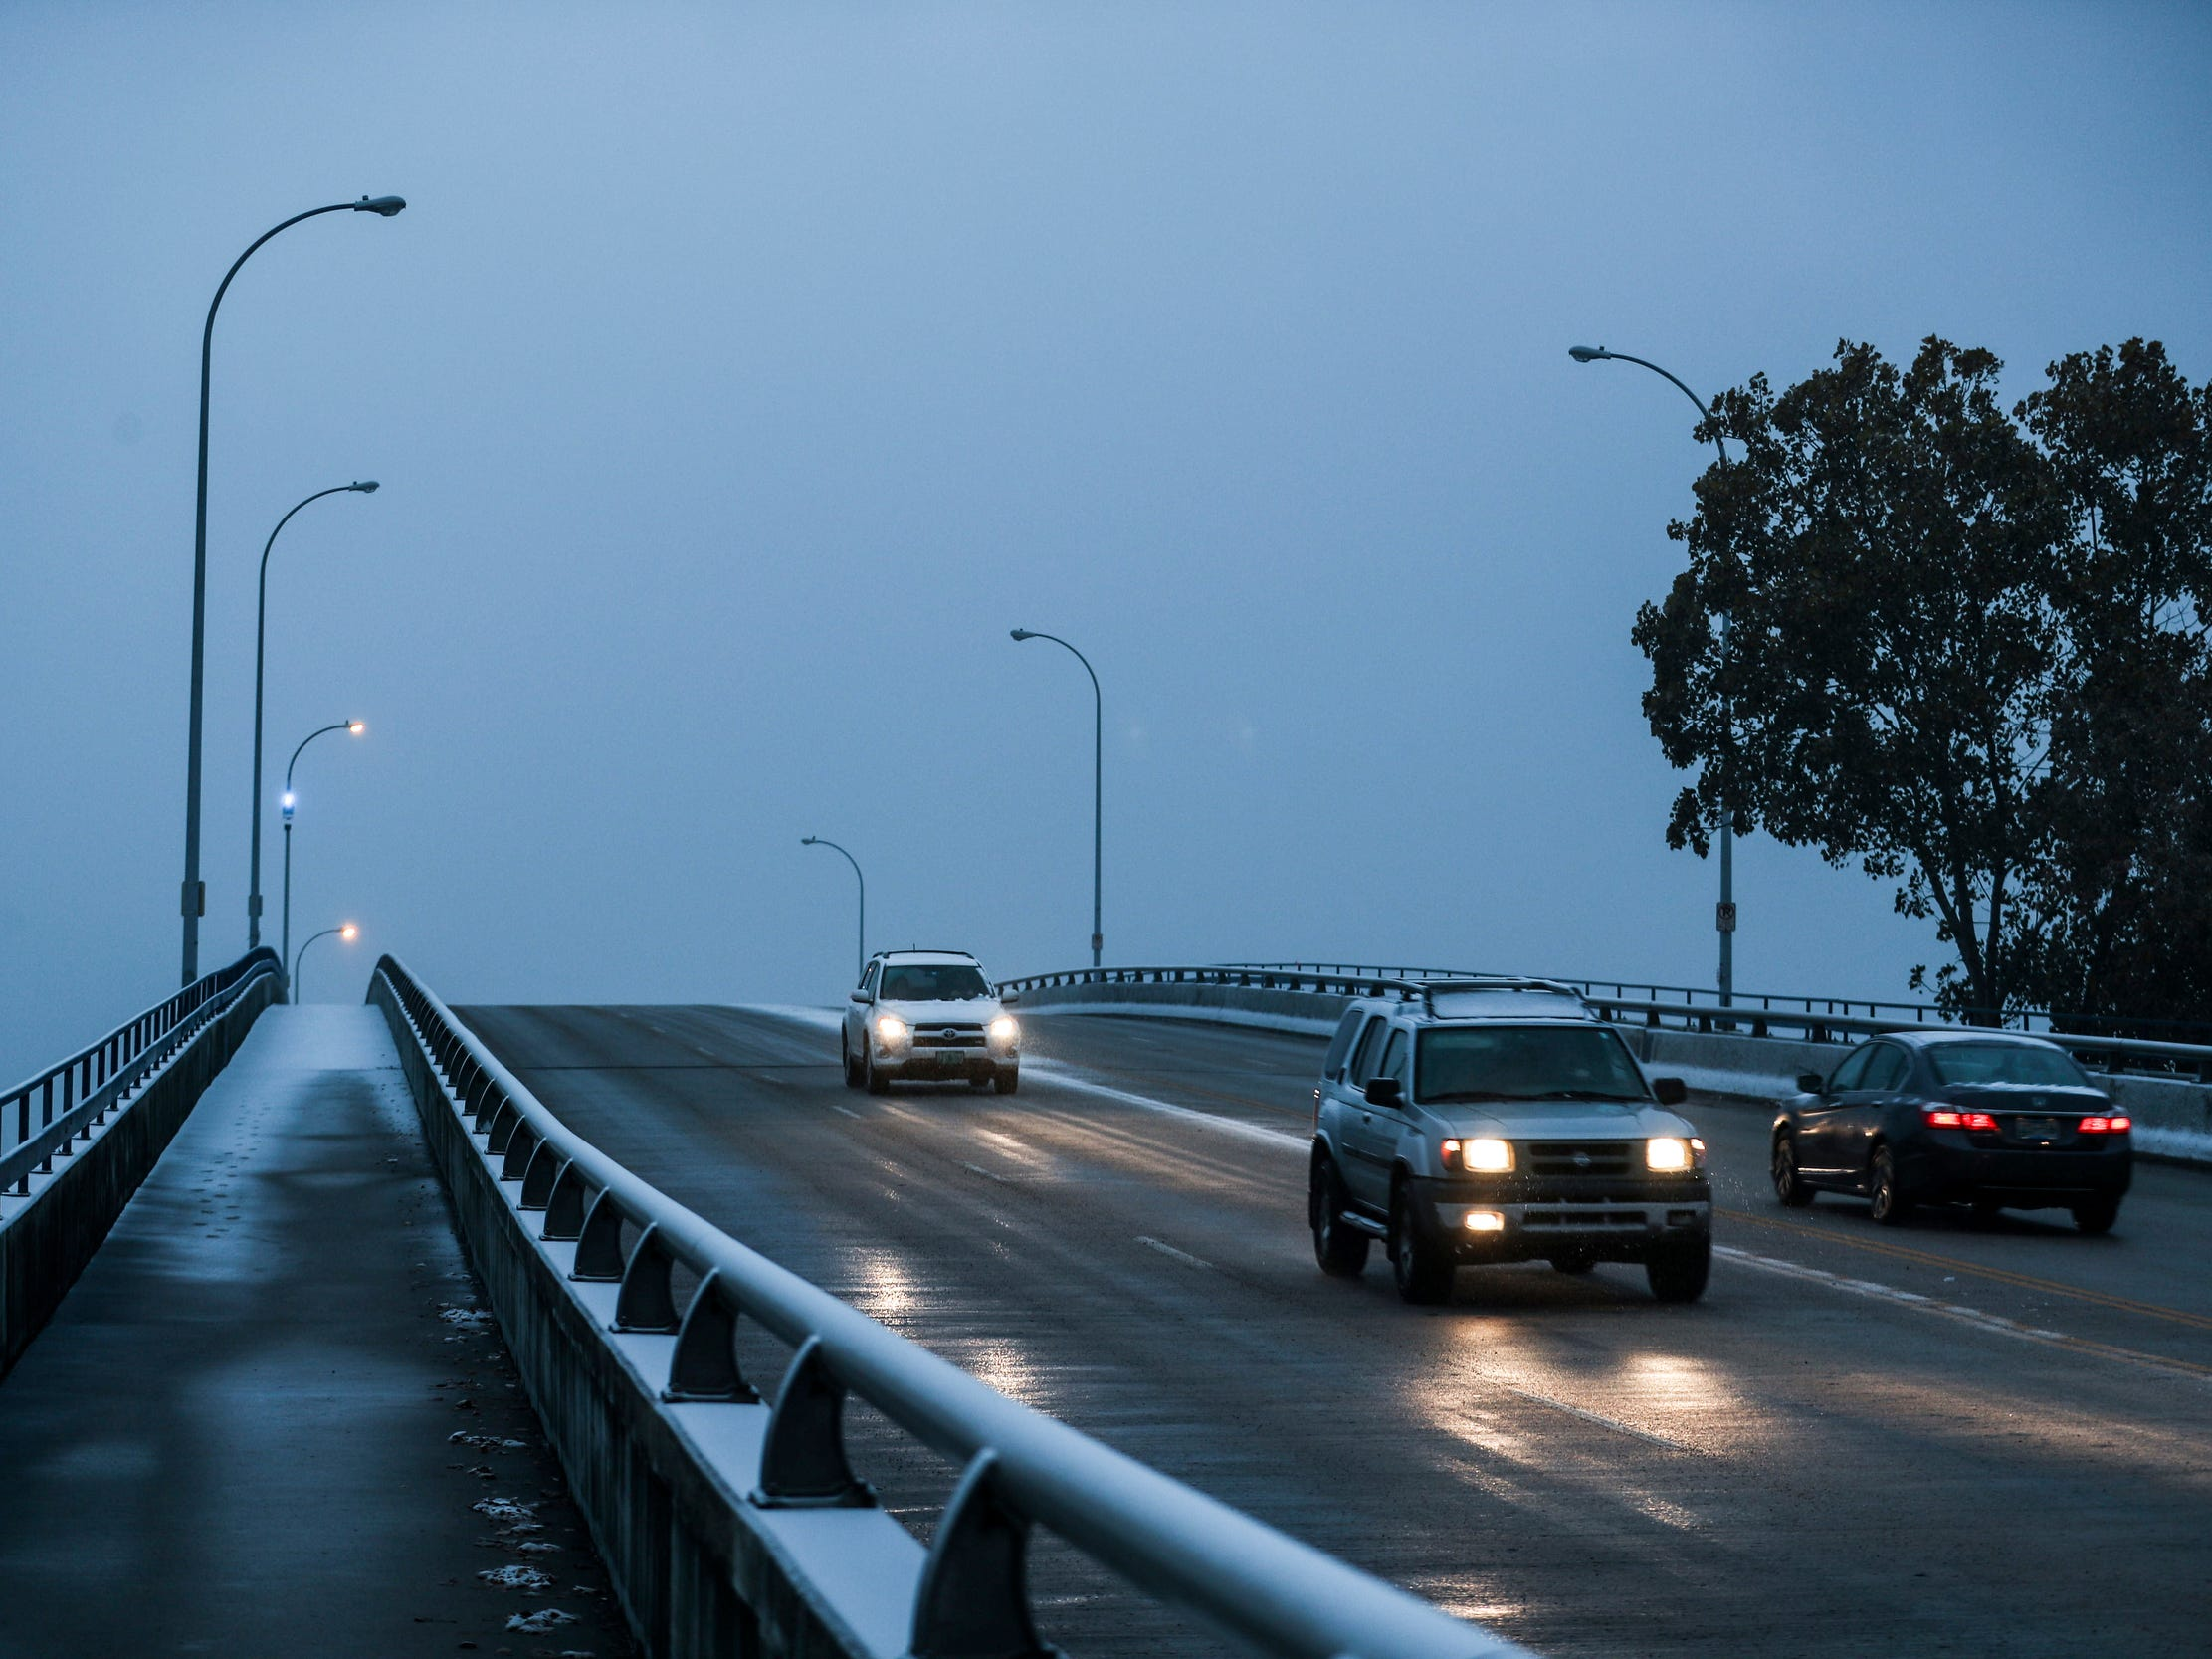 Traffic moves along on the A. W. Willis bridge in Memphis, Tenn., Wednesday, Nov. 14, 2018, during Wednesday's winter weather.